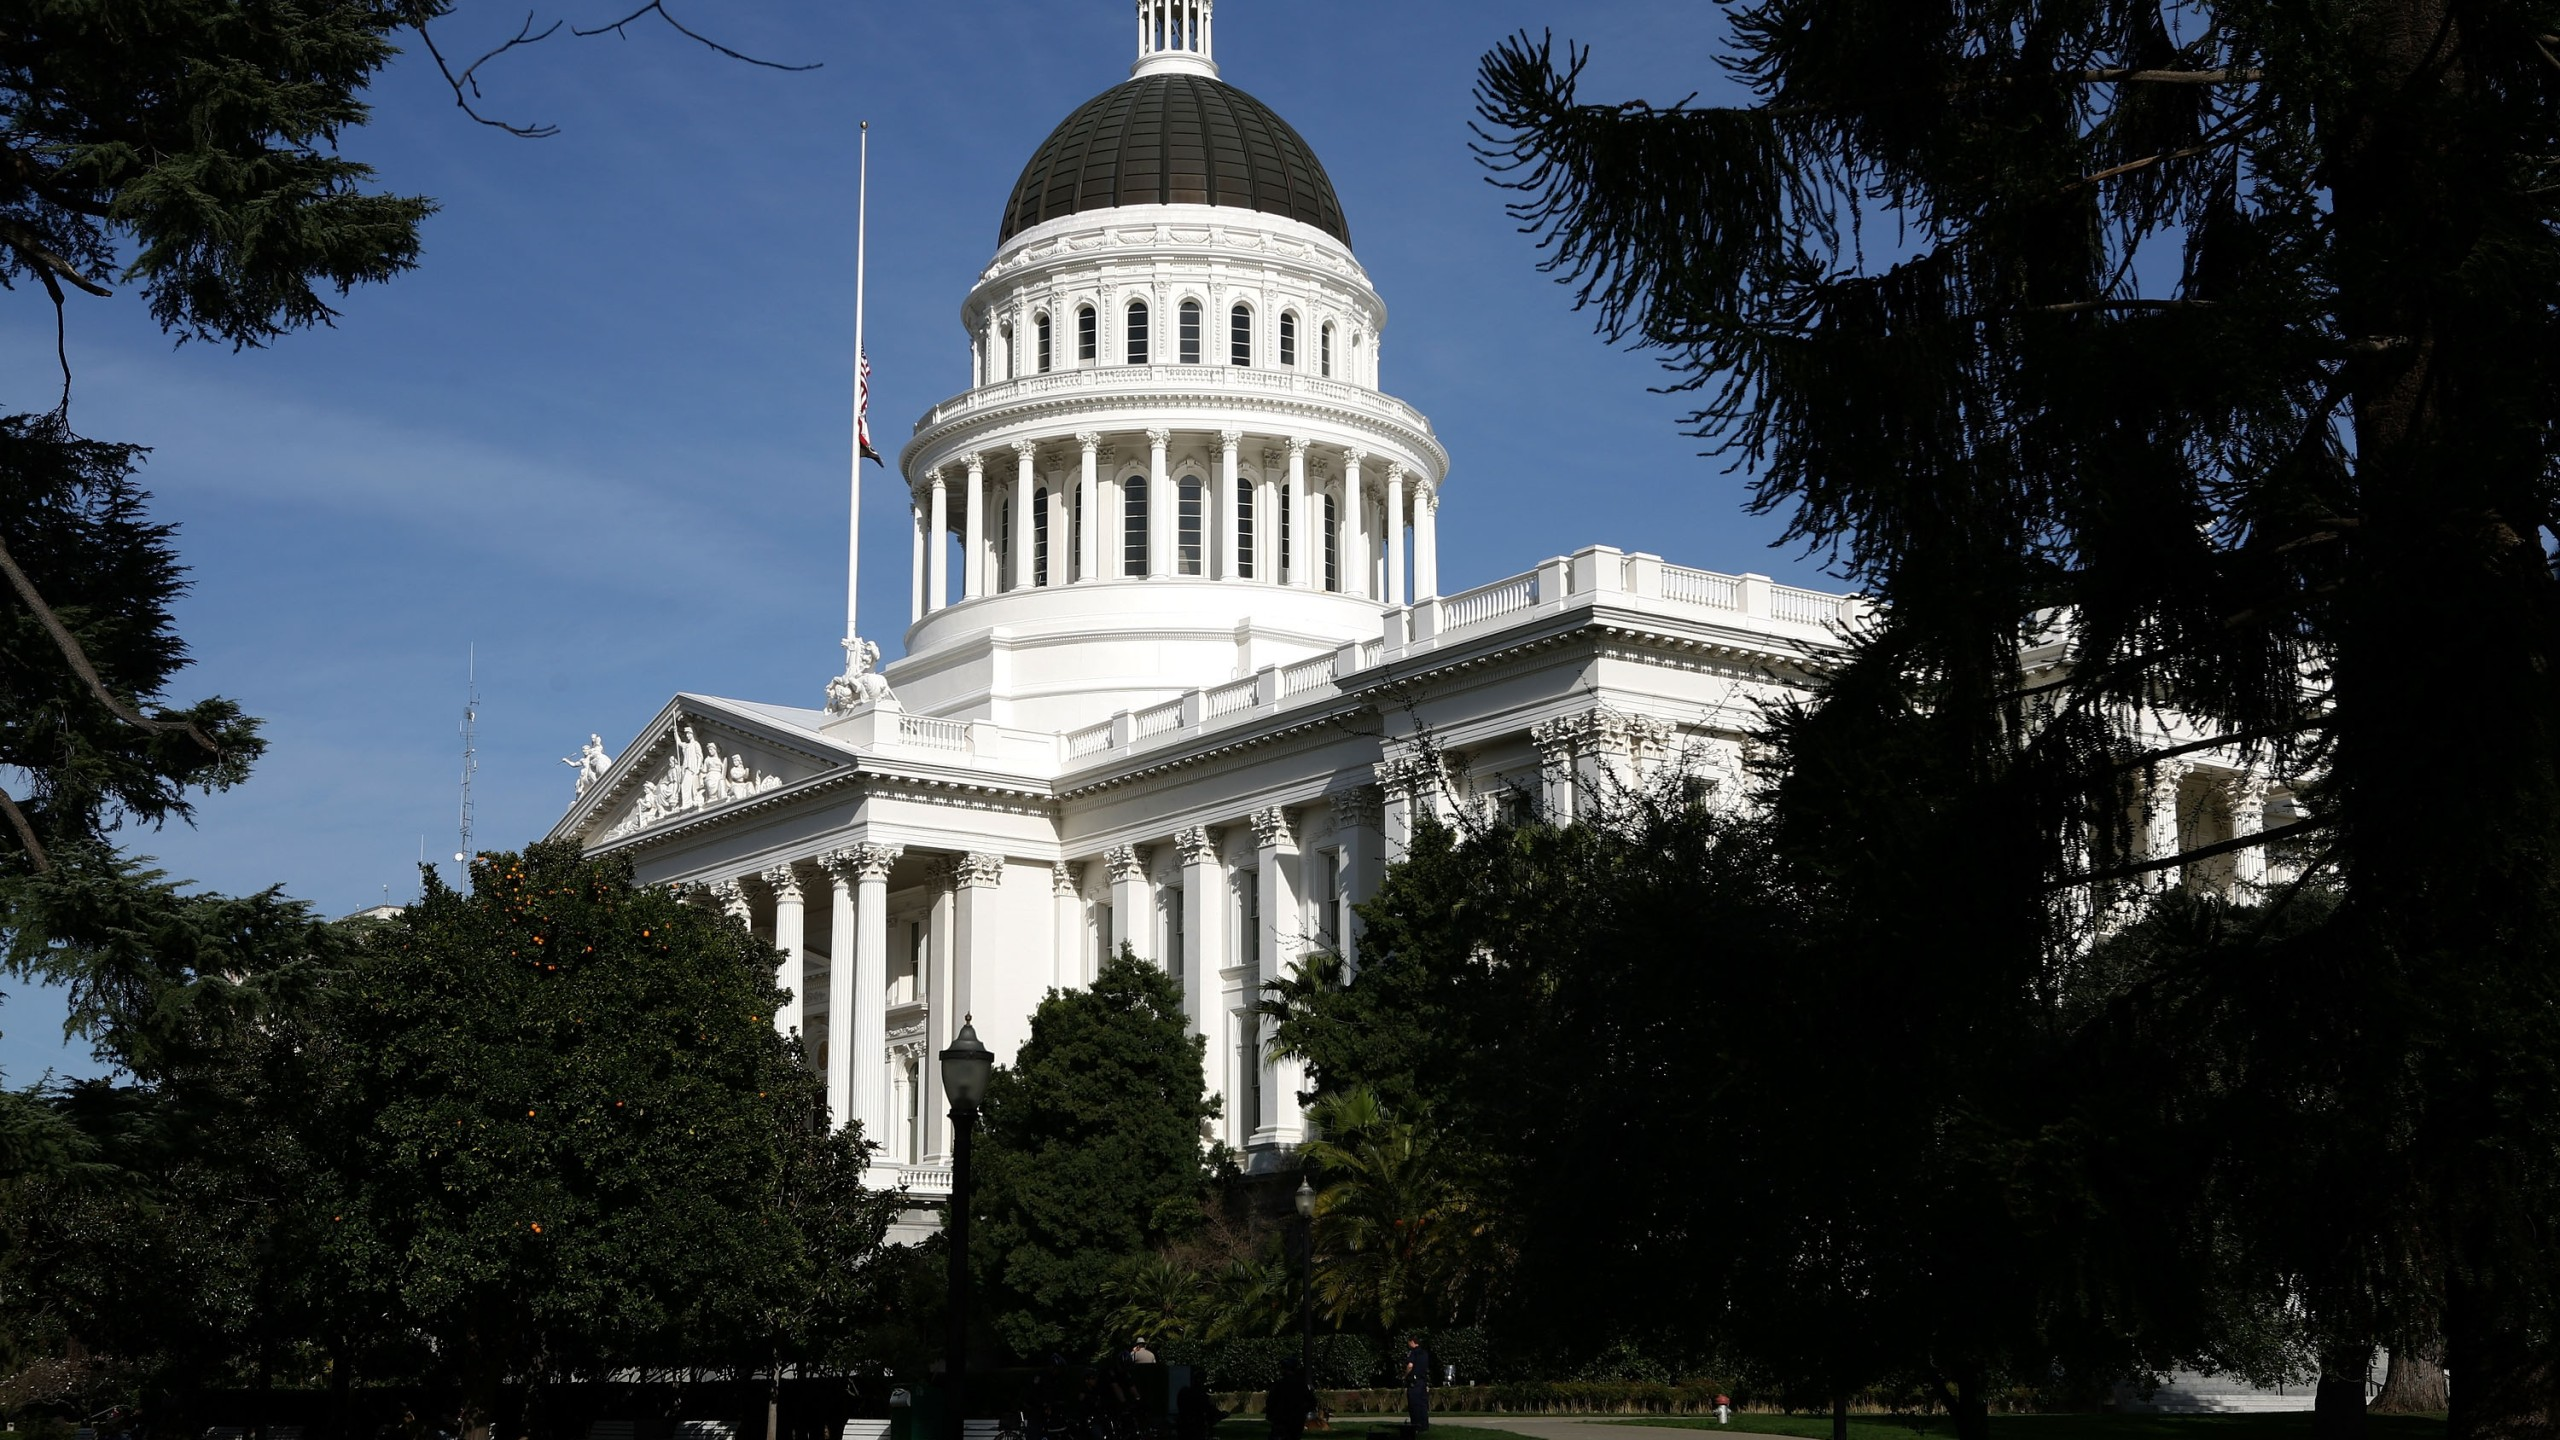 The California State Capitol in Sacramento is seen on Feb. 19, 2009. (Credit: Justin Sullivan / Getty Images)